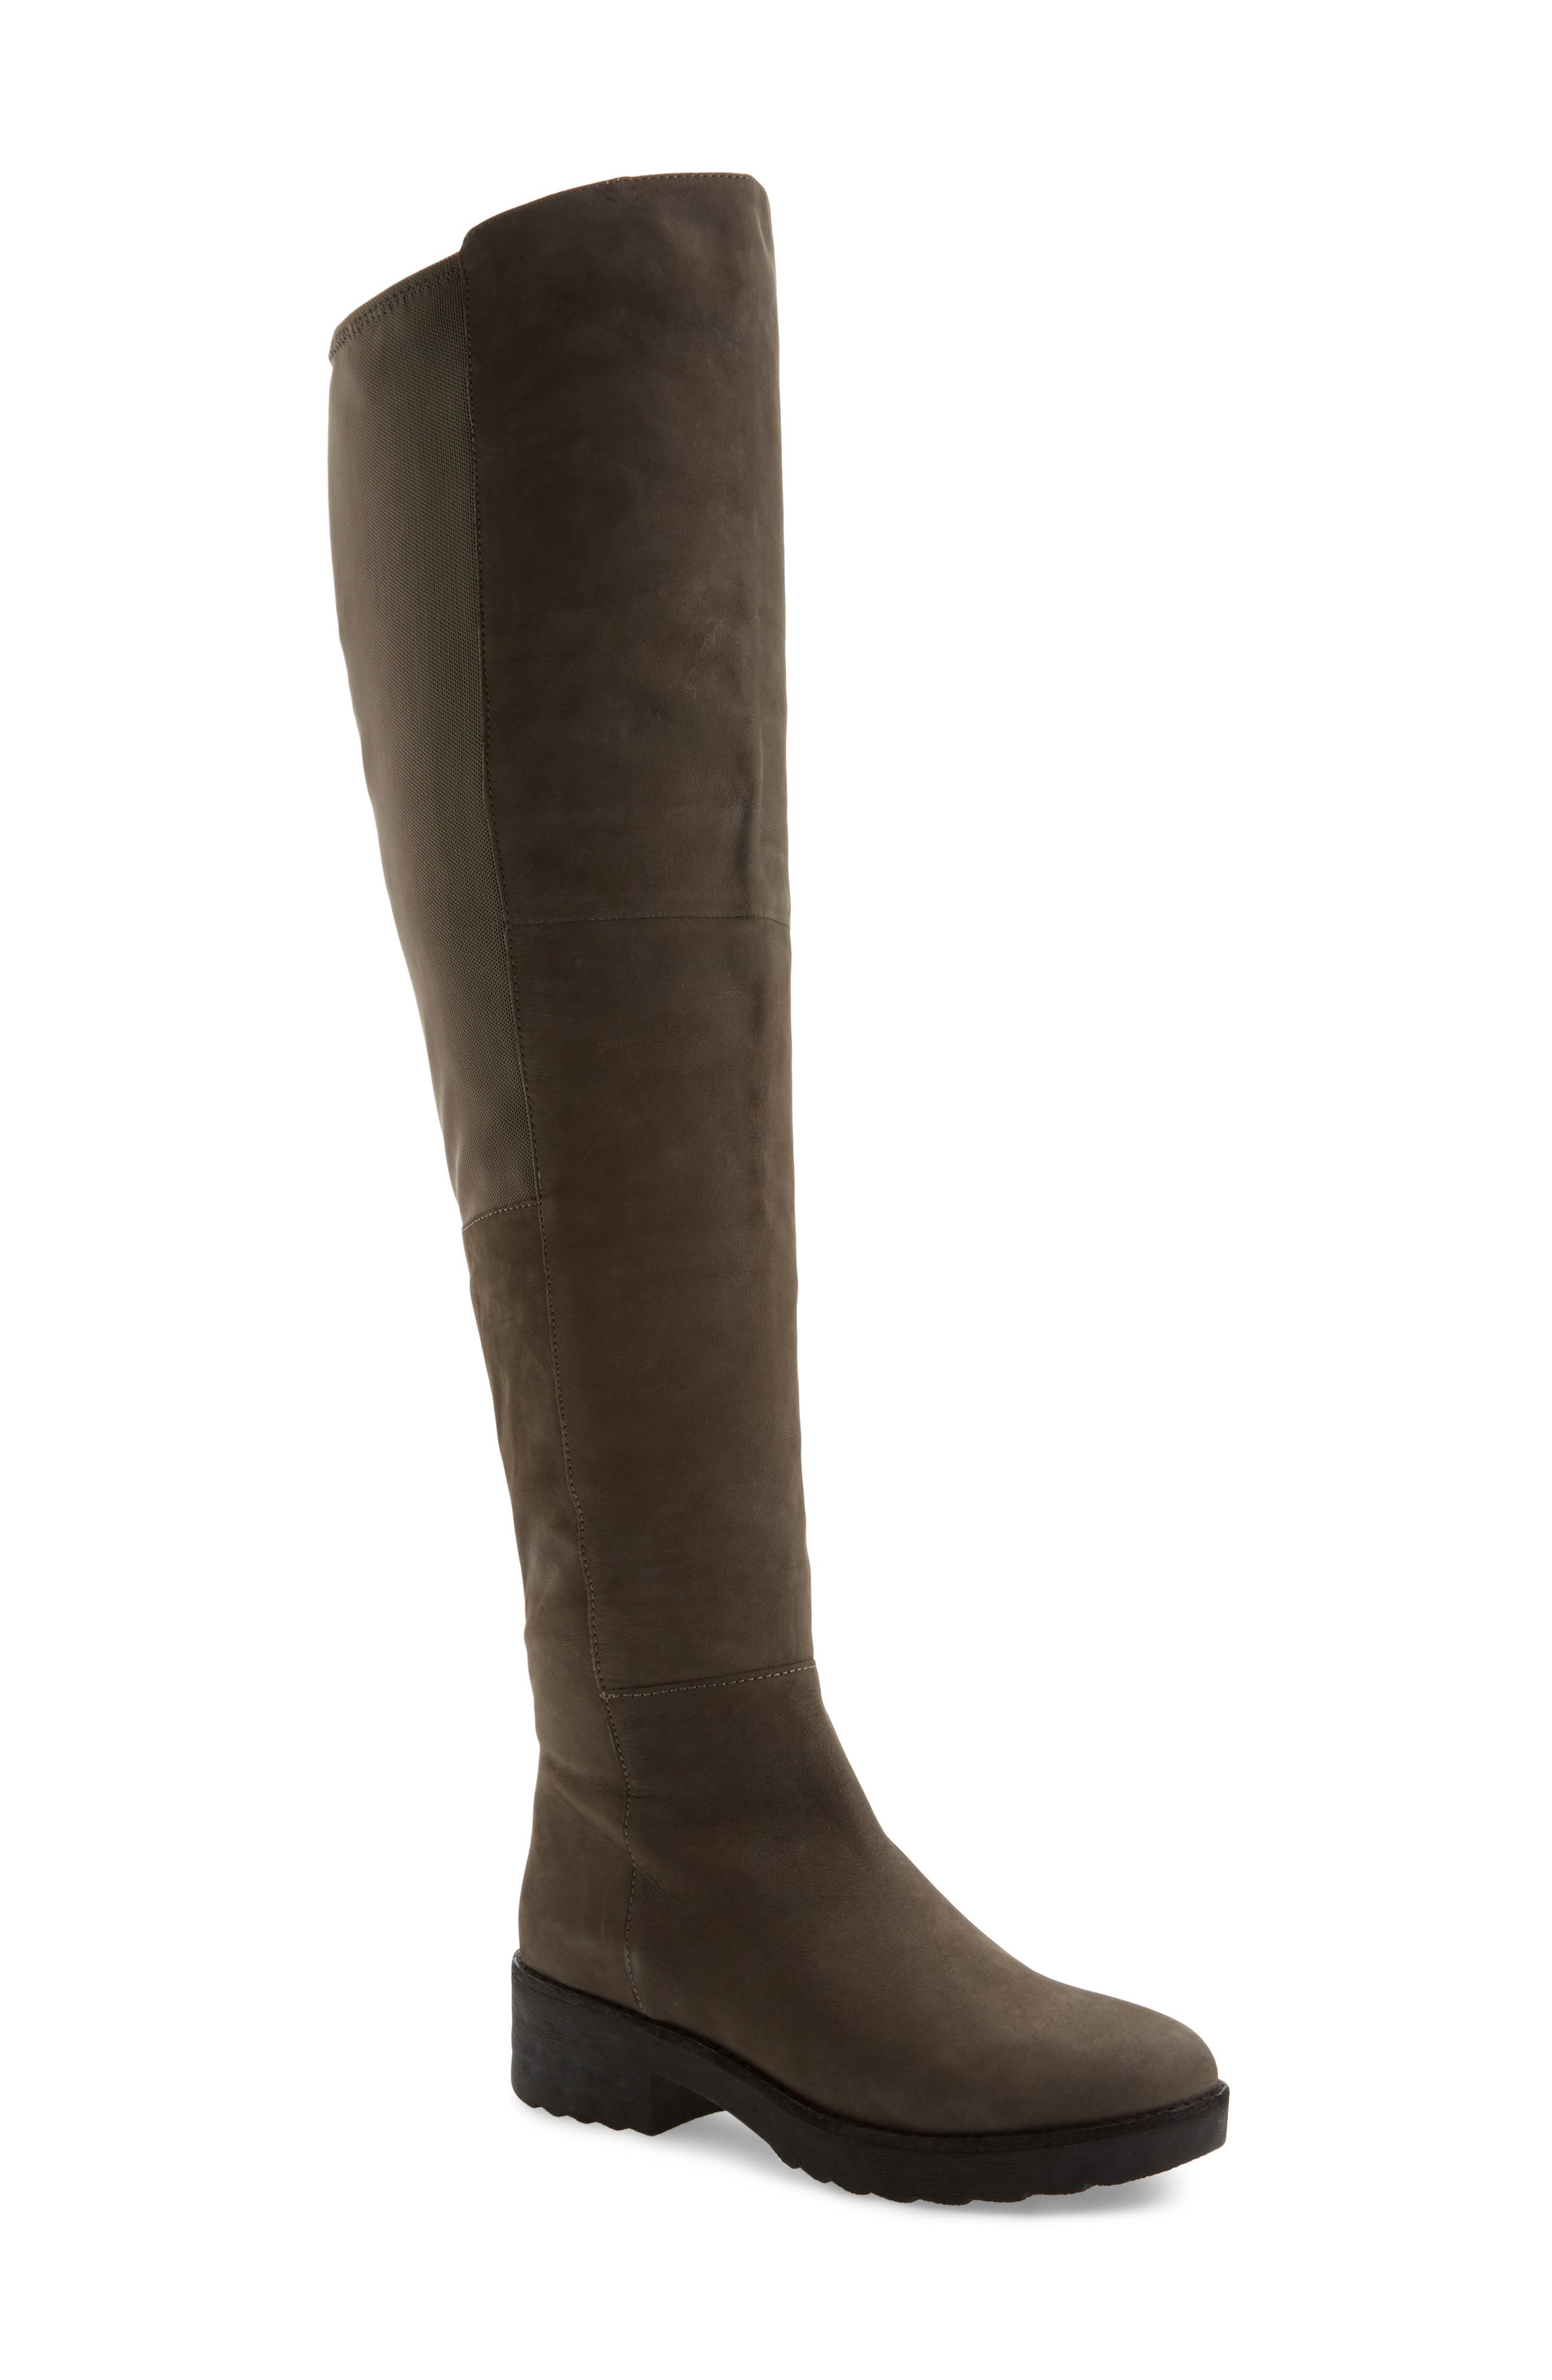 Alternate Image 1 Selected - Eileen Fisher Loft Over the Knee Boot (Women)